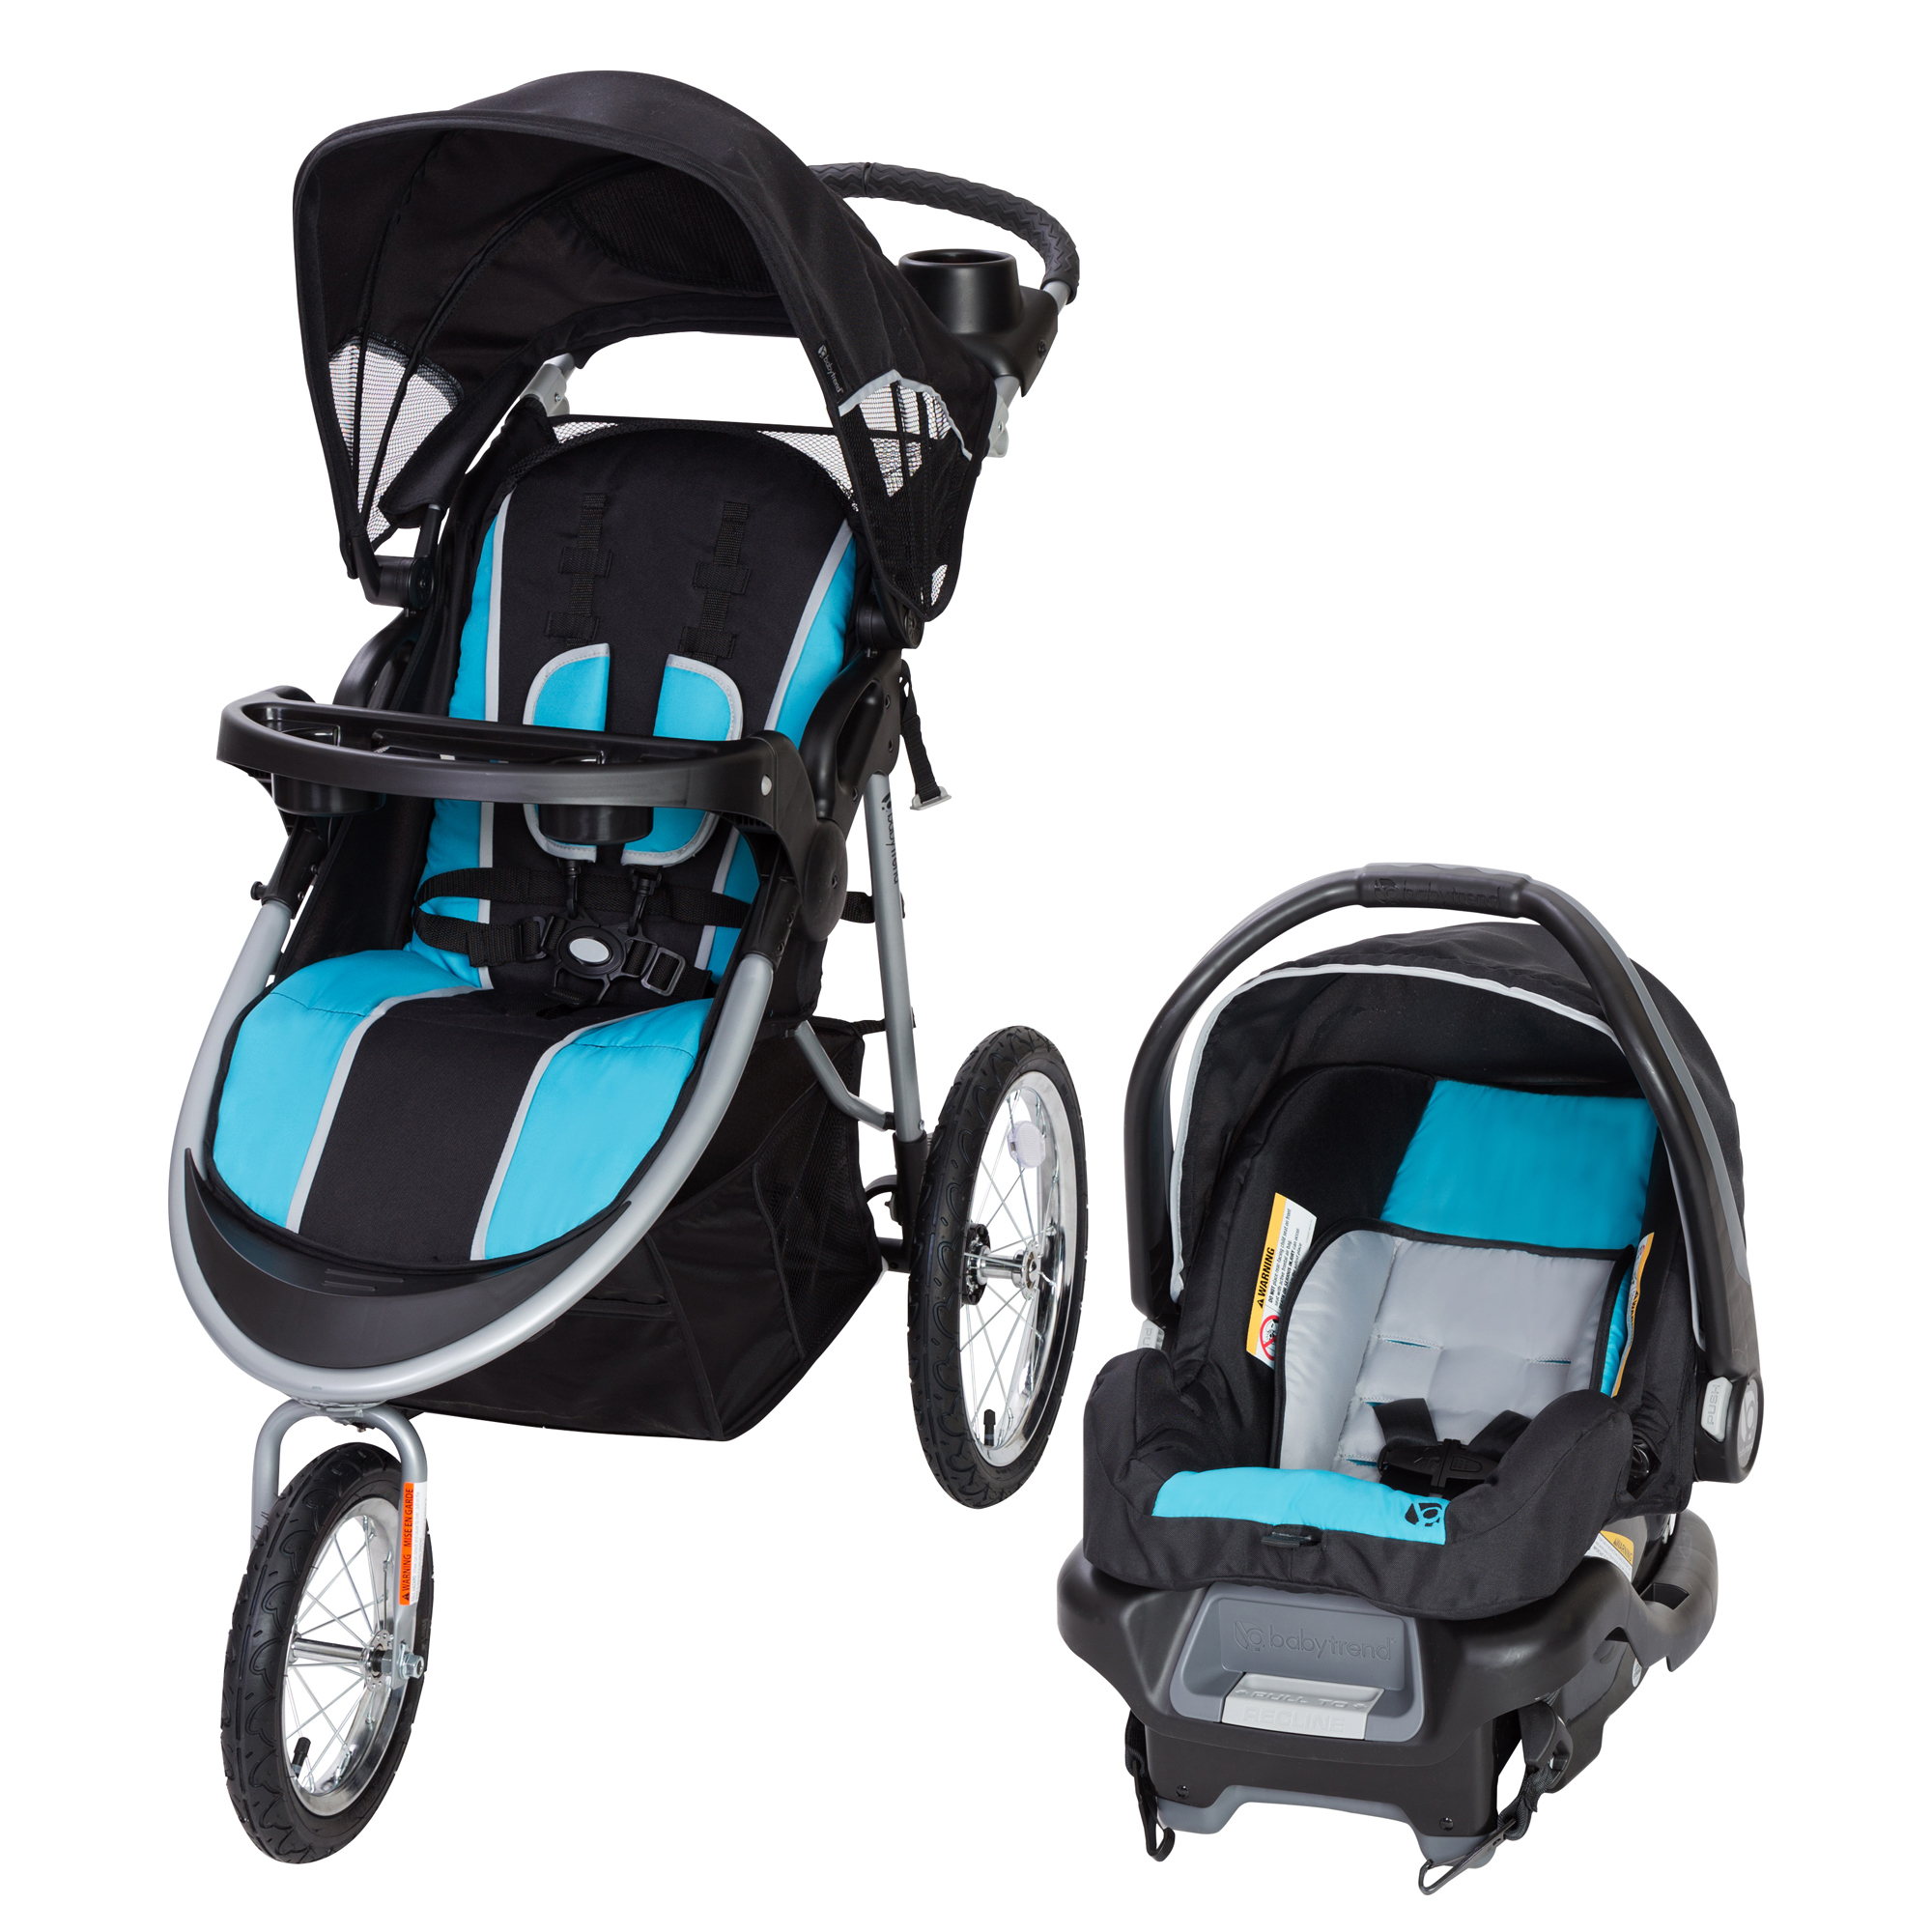 Baby Trend Pathway 35 Jogger Travel System-Optic Aqua by Baby Trend